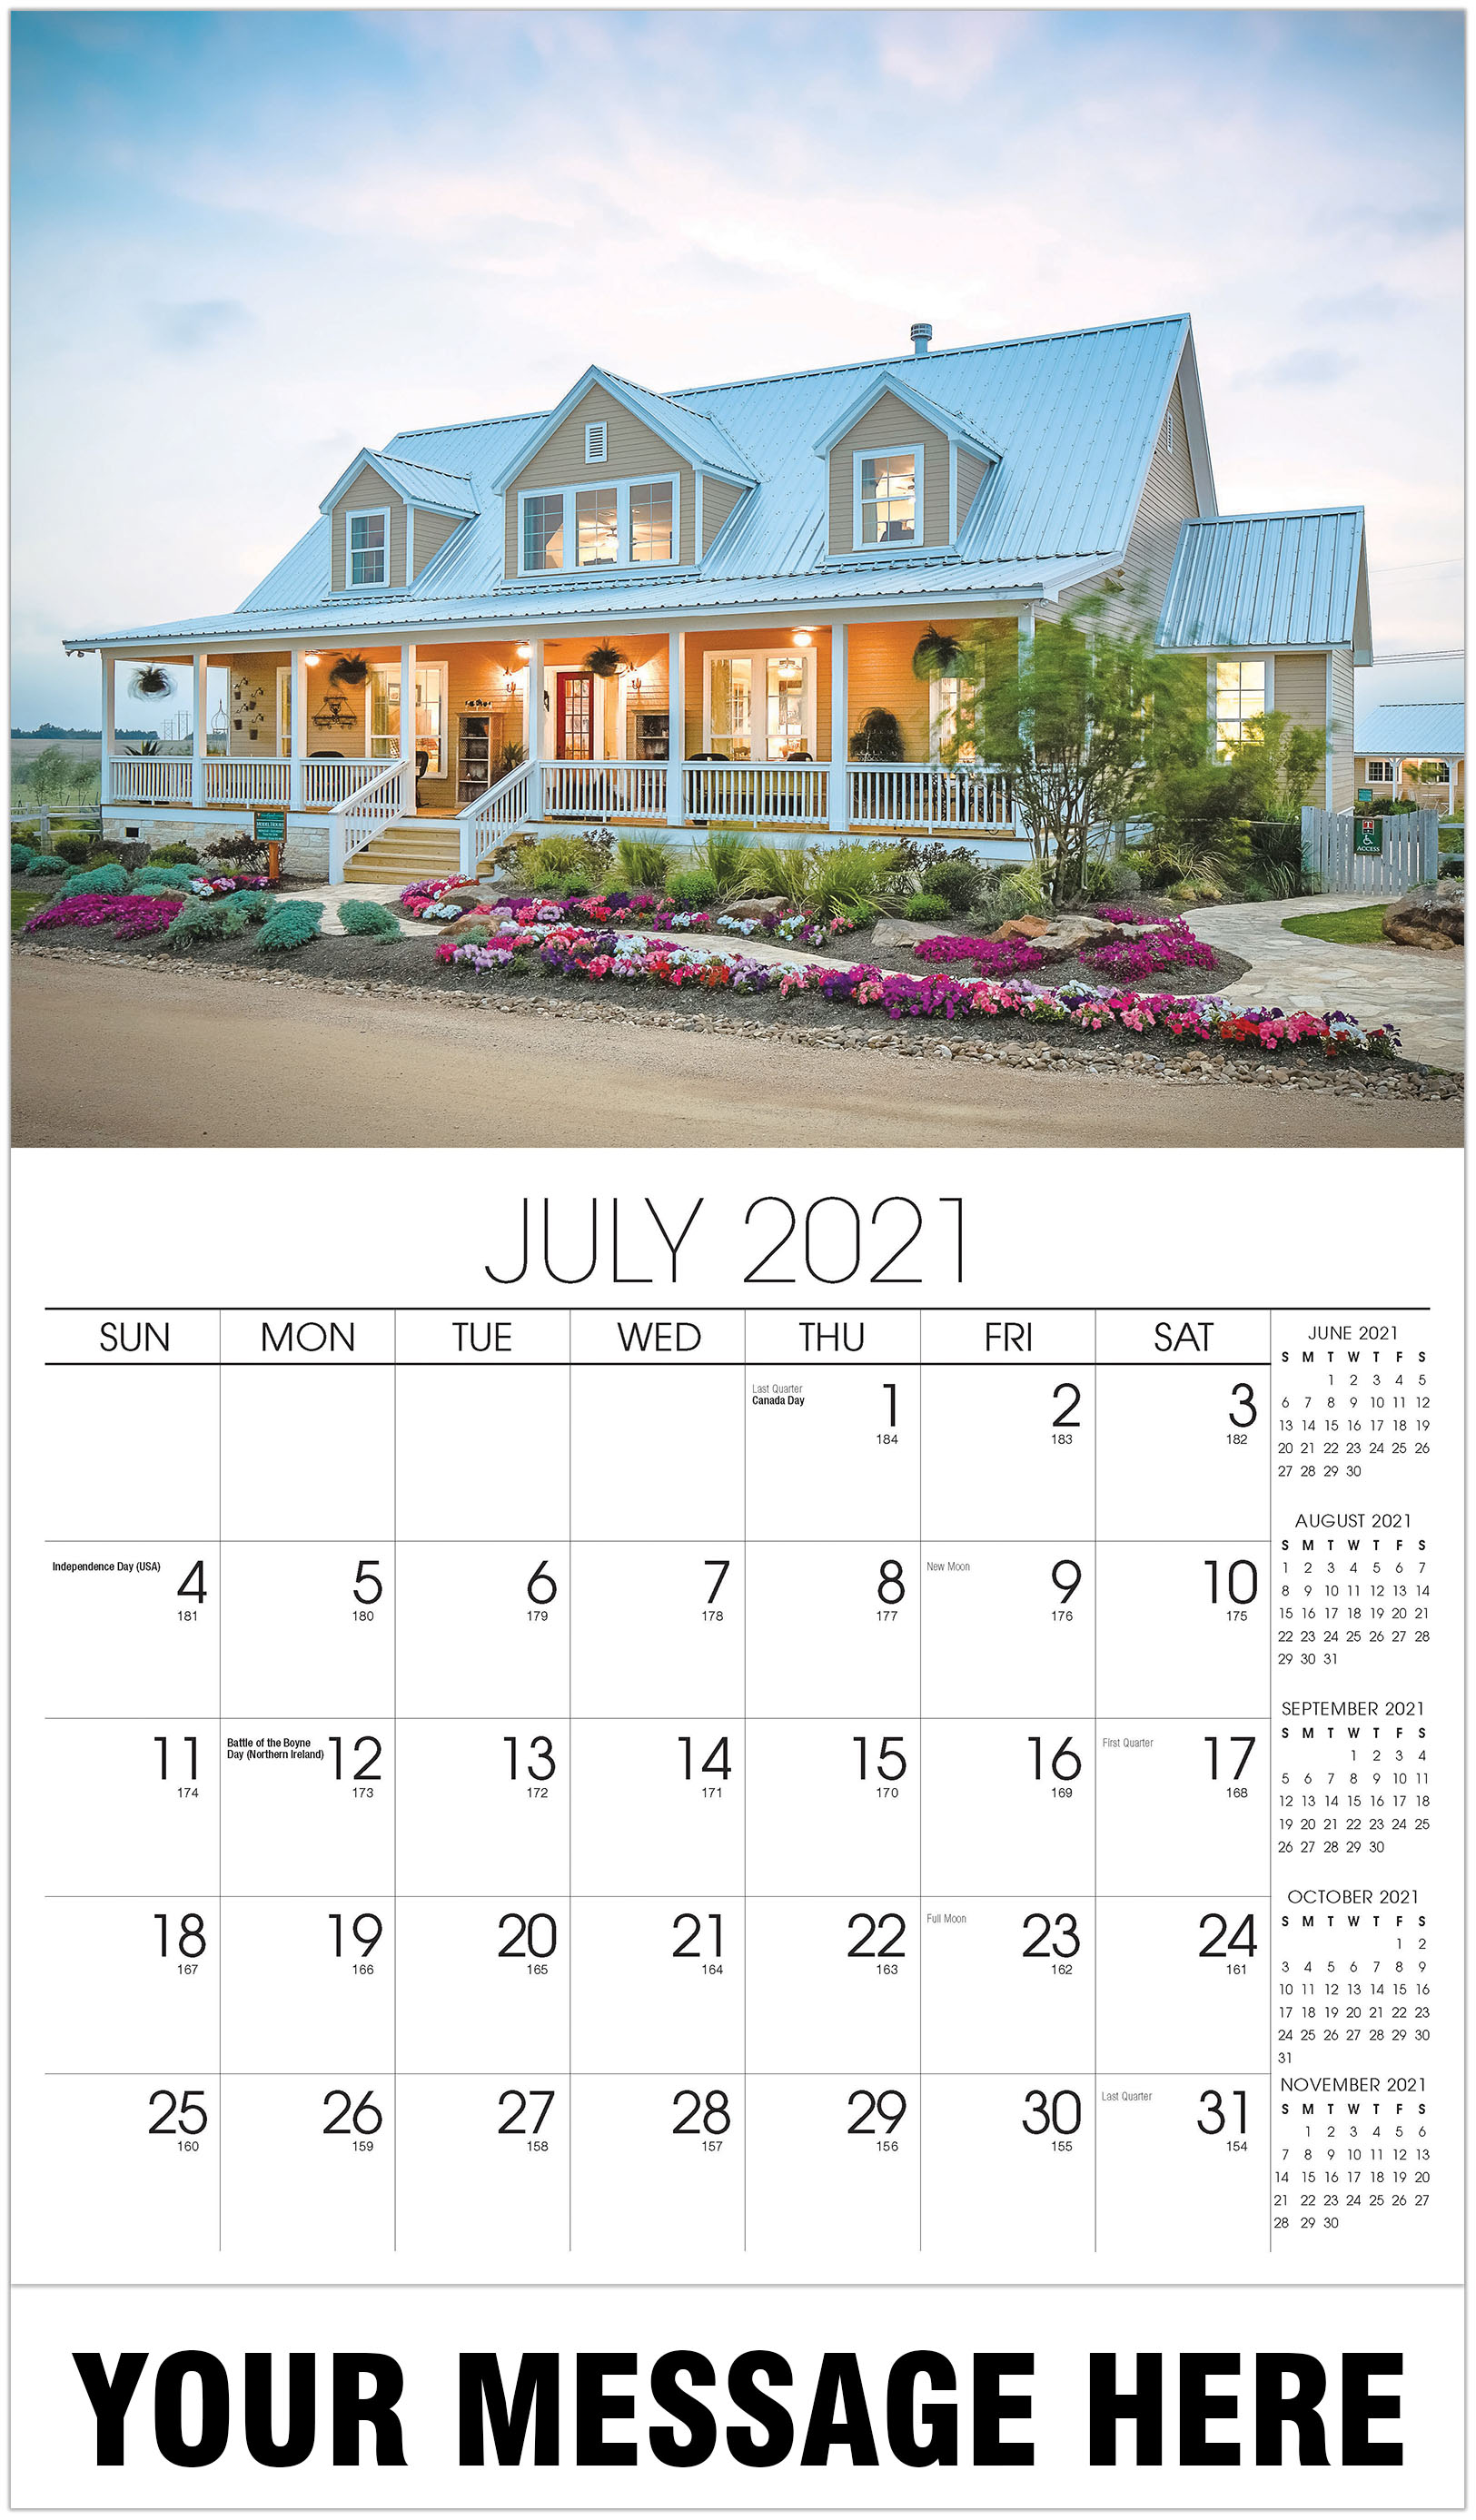 Luxury Homes Calendar - July - Homes 2021 Promotional Calendar